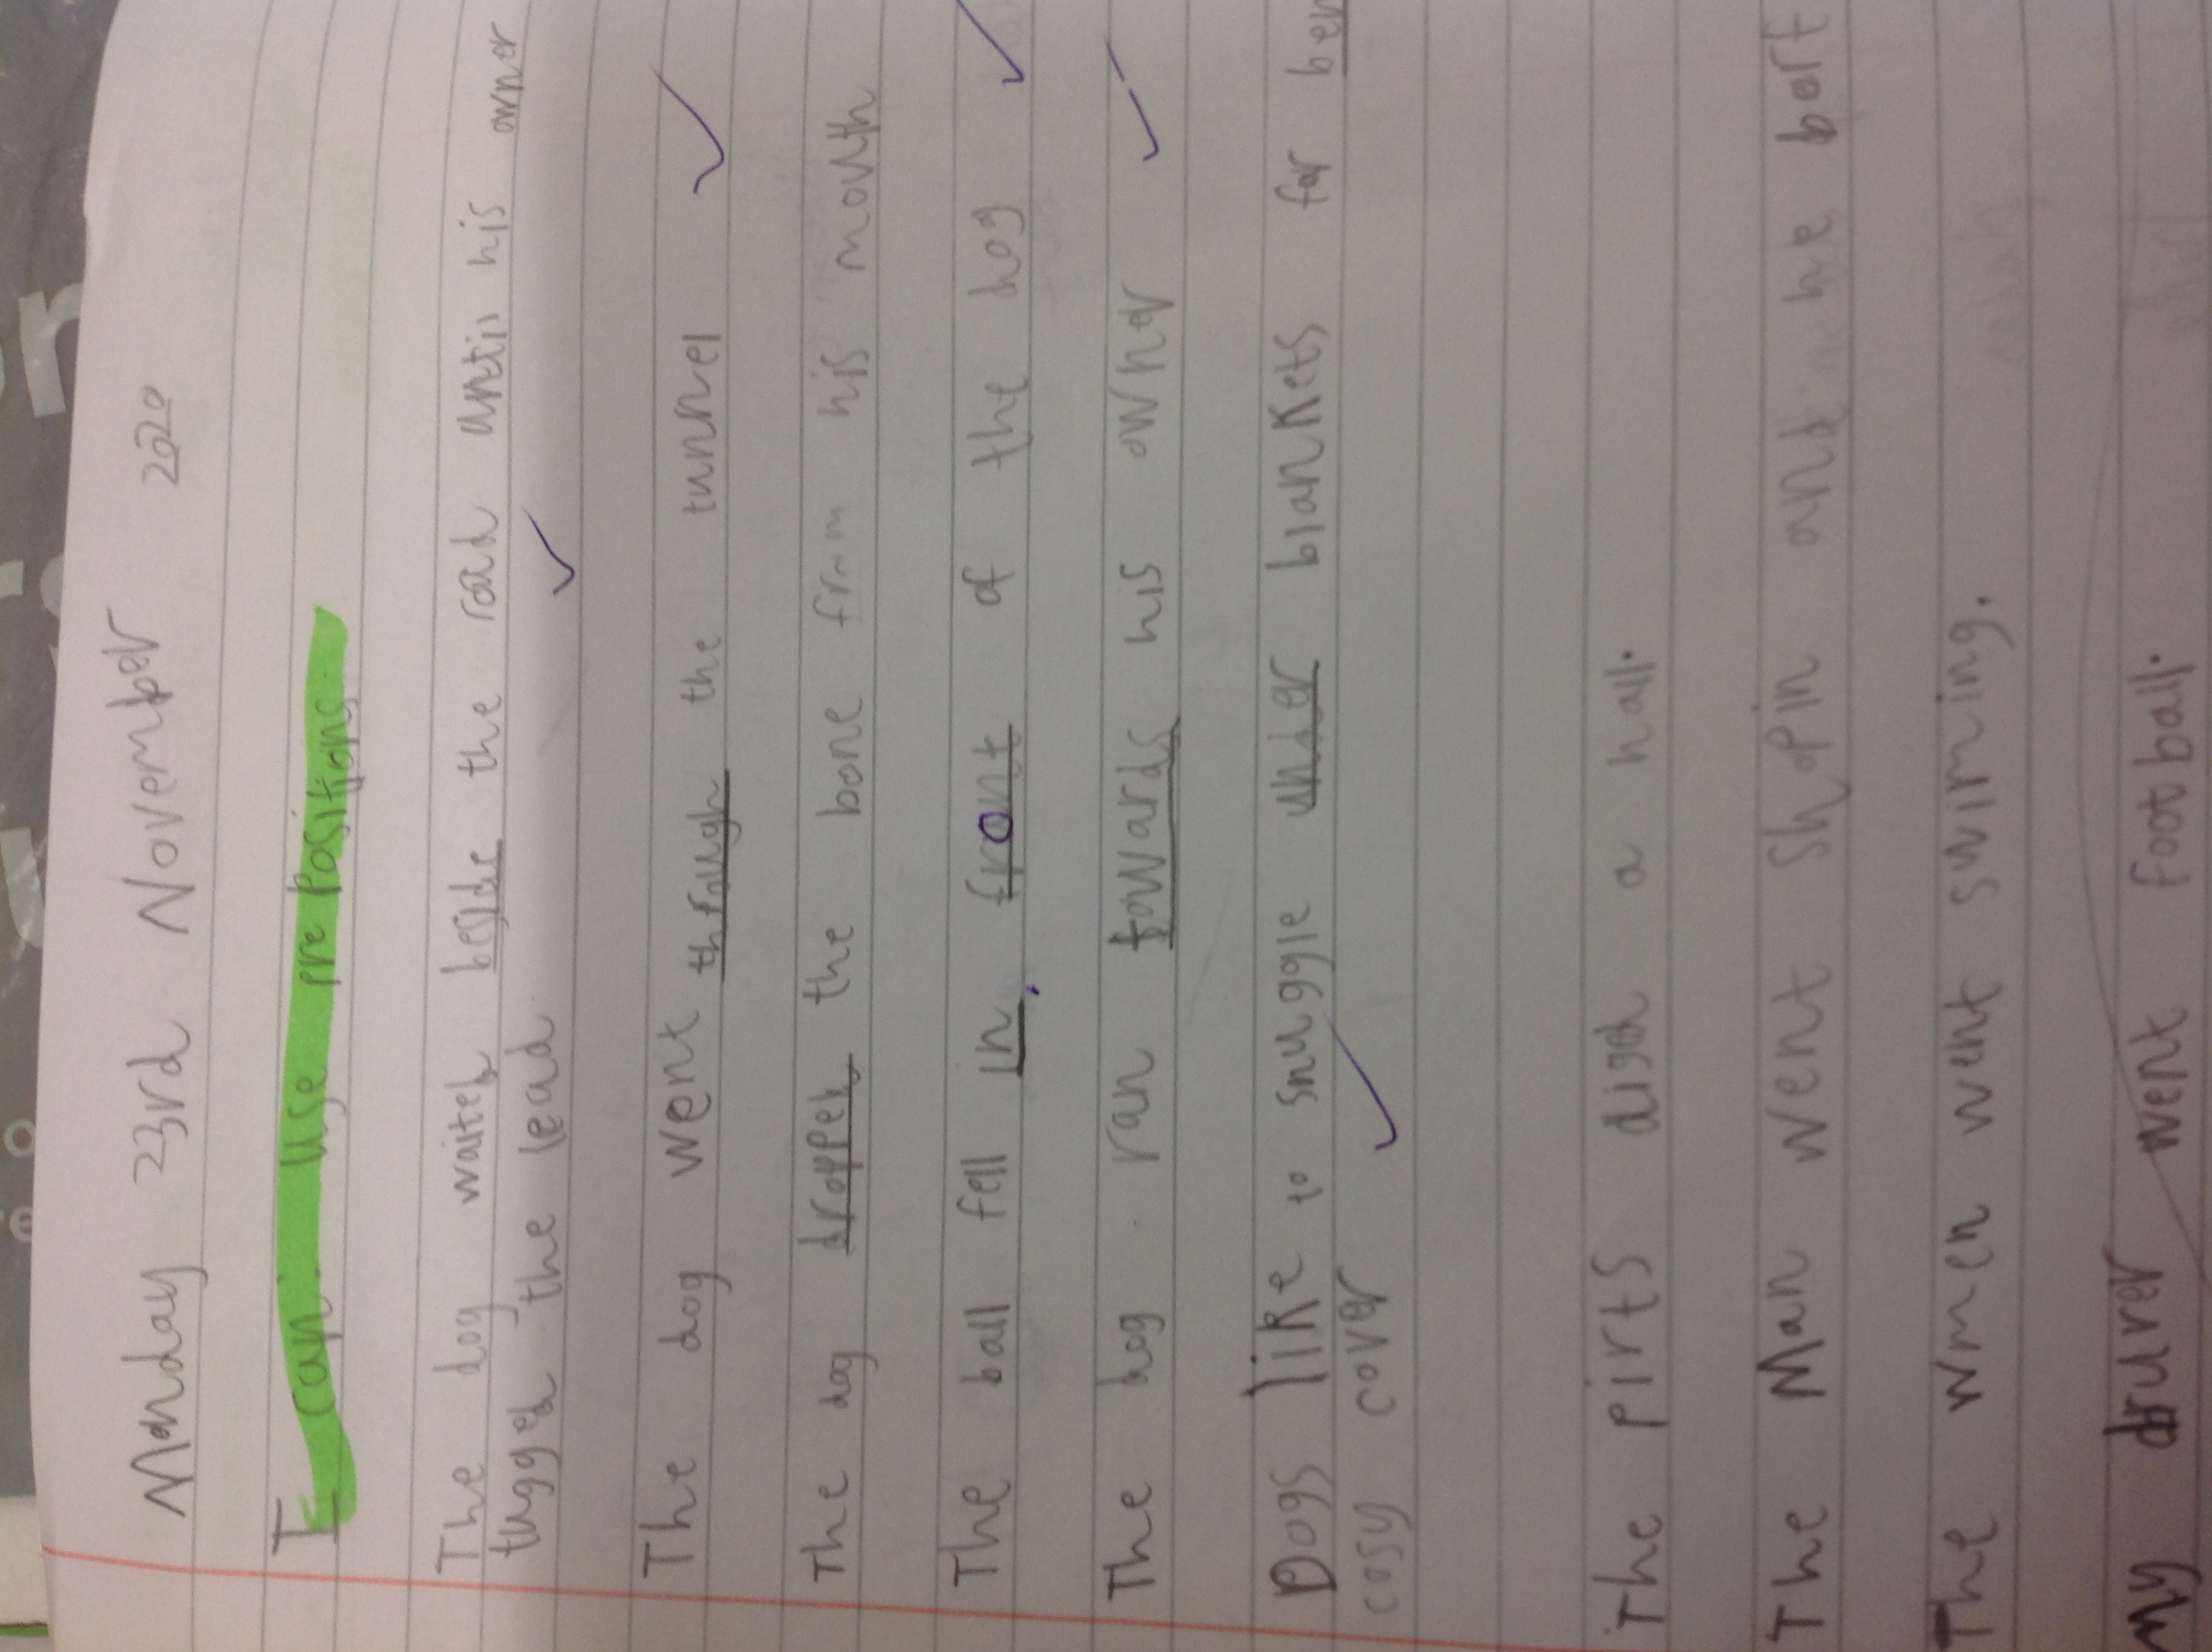 Azad's fantastic writing!